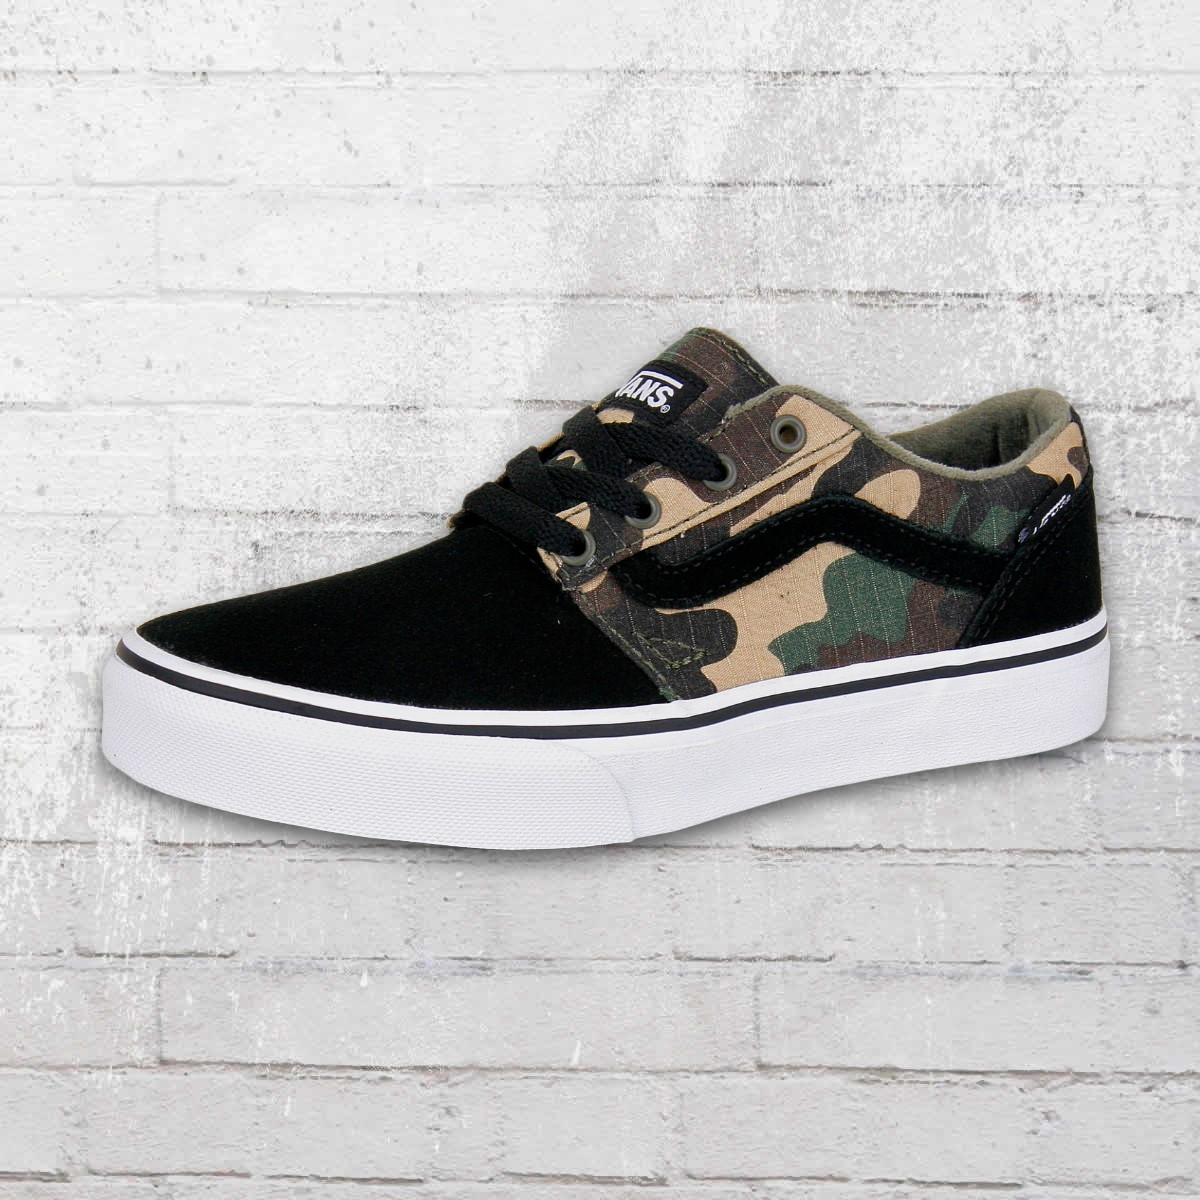 Camo Shoes, Clothing & Gear (97) Make a statement in unique camouflage prints with Nike camo shoes, clothing and gear. Choose from a variety of items designed with distinct camouflage patterns, and find new styles to add to your rotation, from camo pants to camo hoodies.